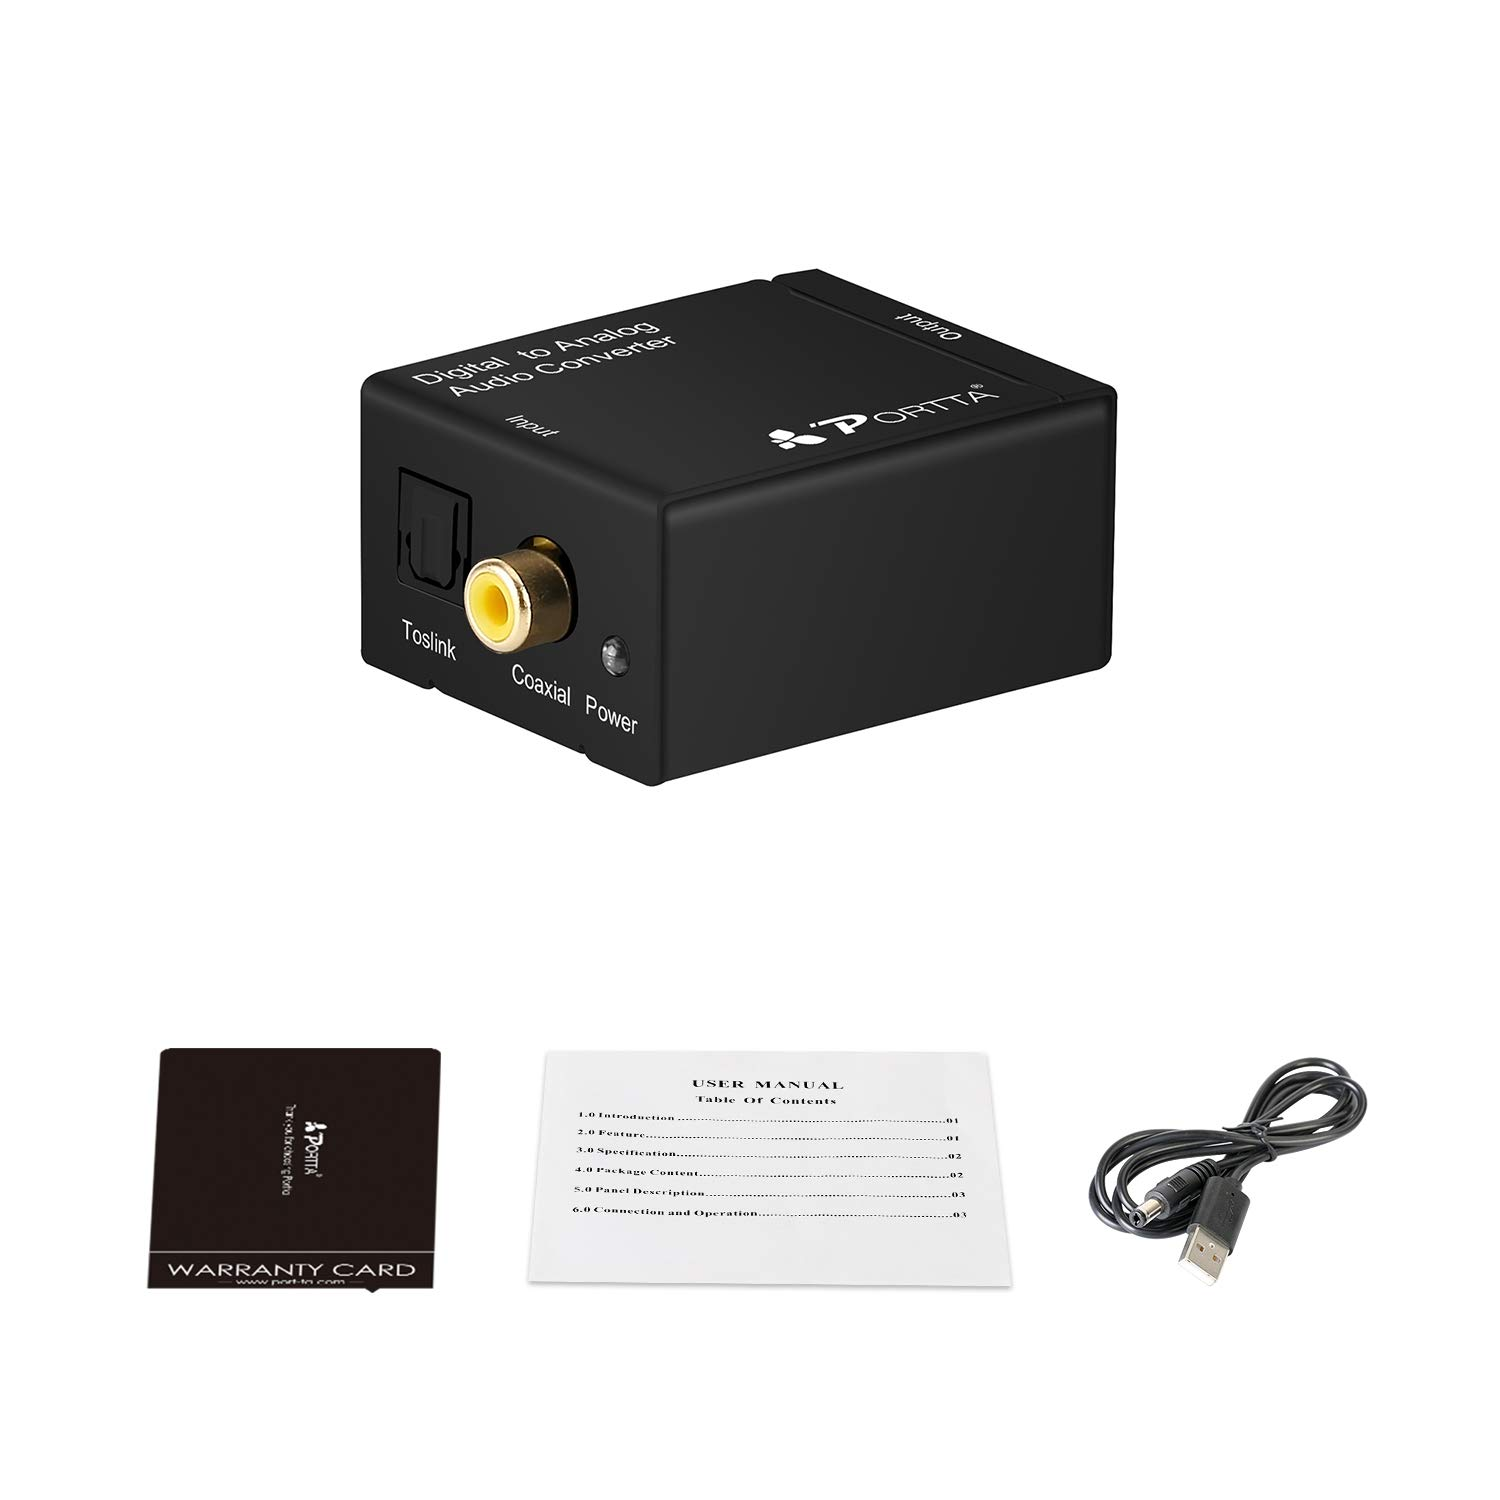 Amazon.com: Portta Audio Converter Digital Toslink/Optical SPDIF to L/R RCA  Audio Converter Support 2 channel Stereo LPCM CH2.0 without Decode Function  for ...